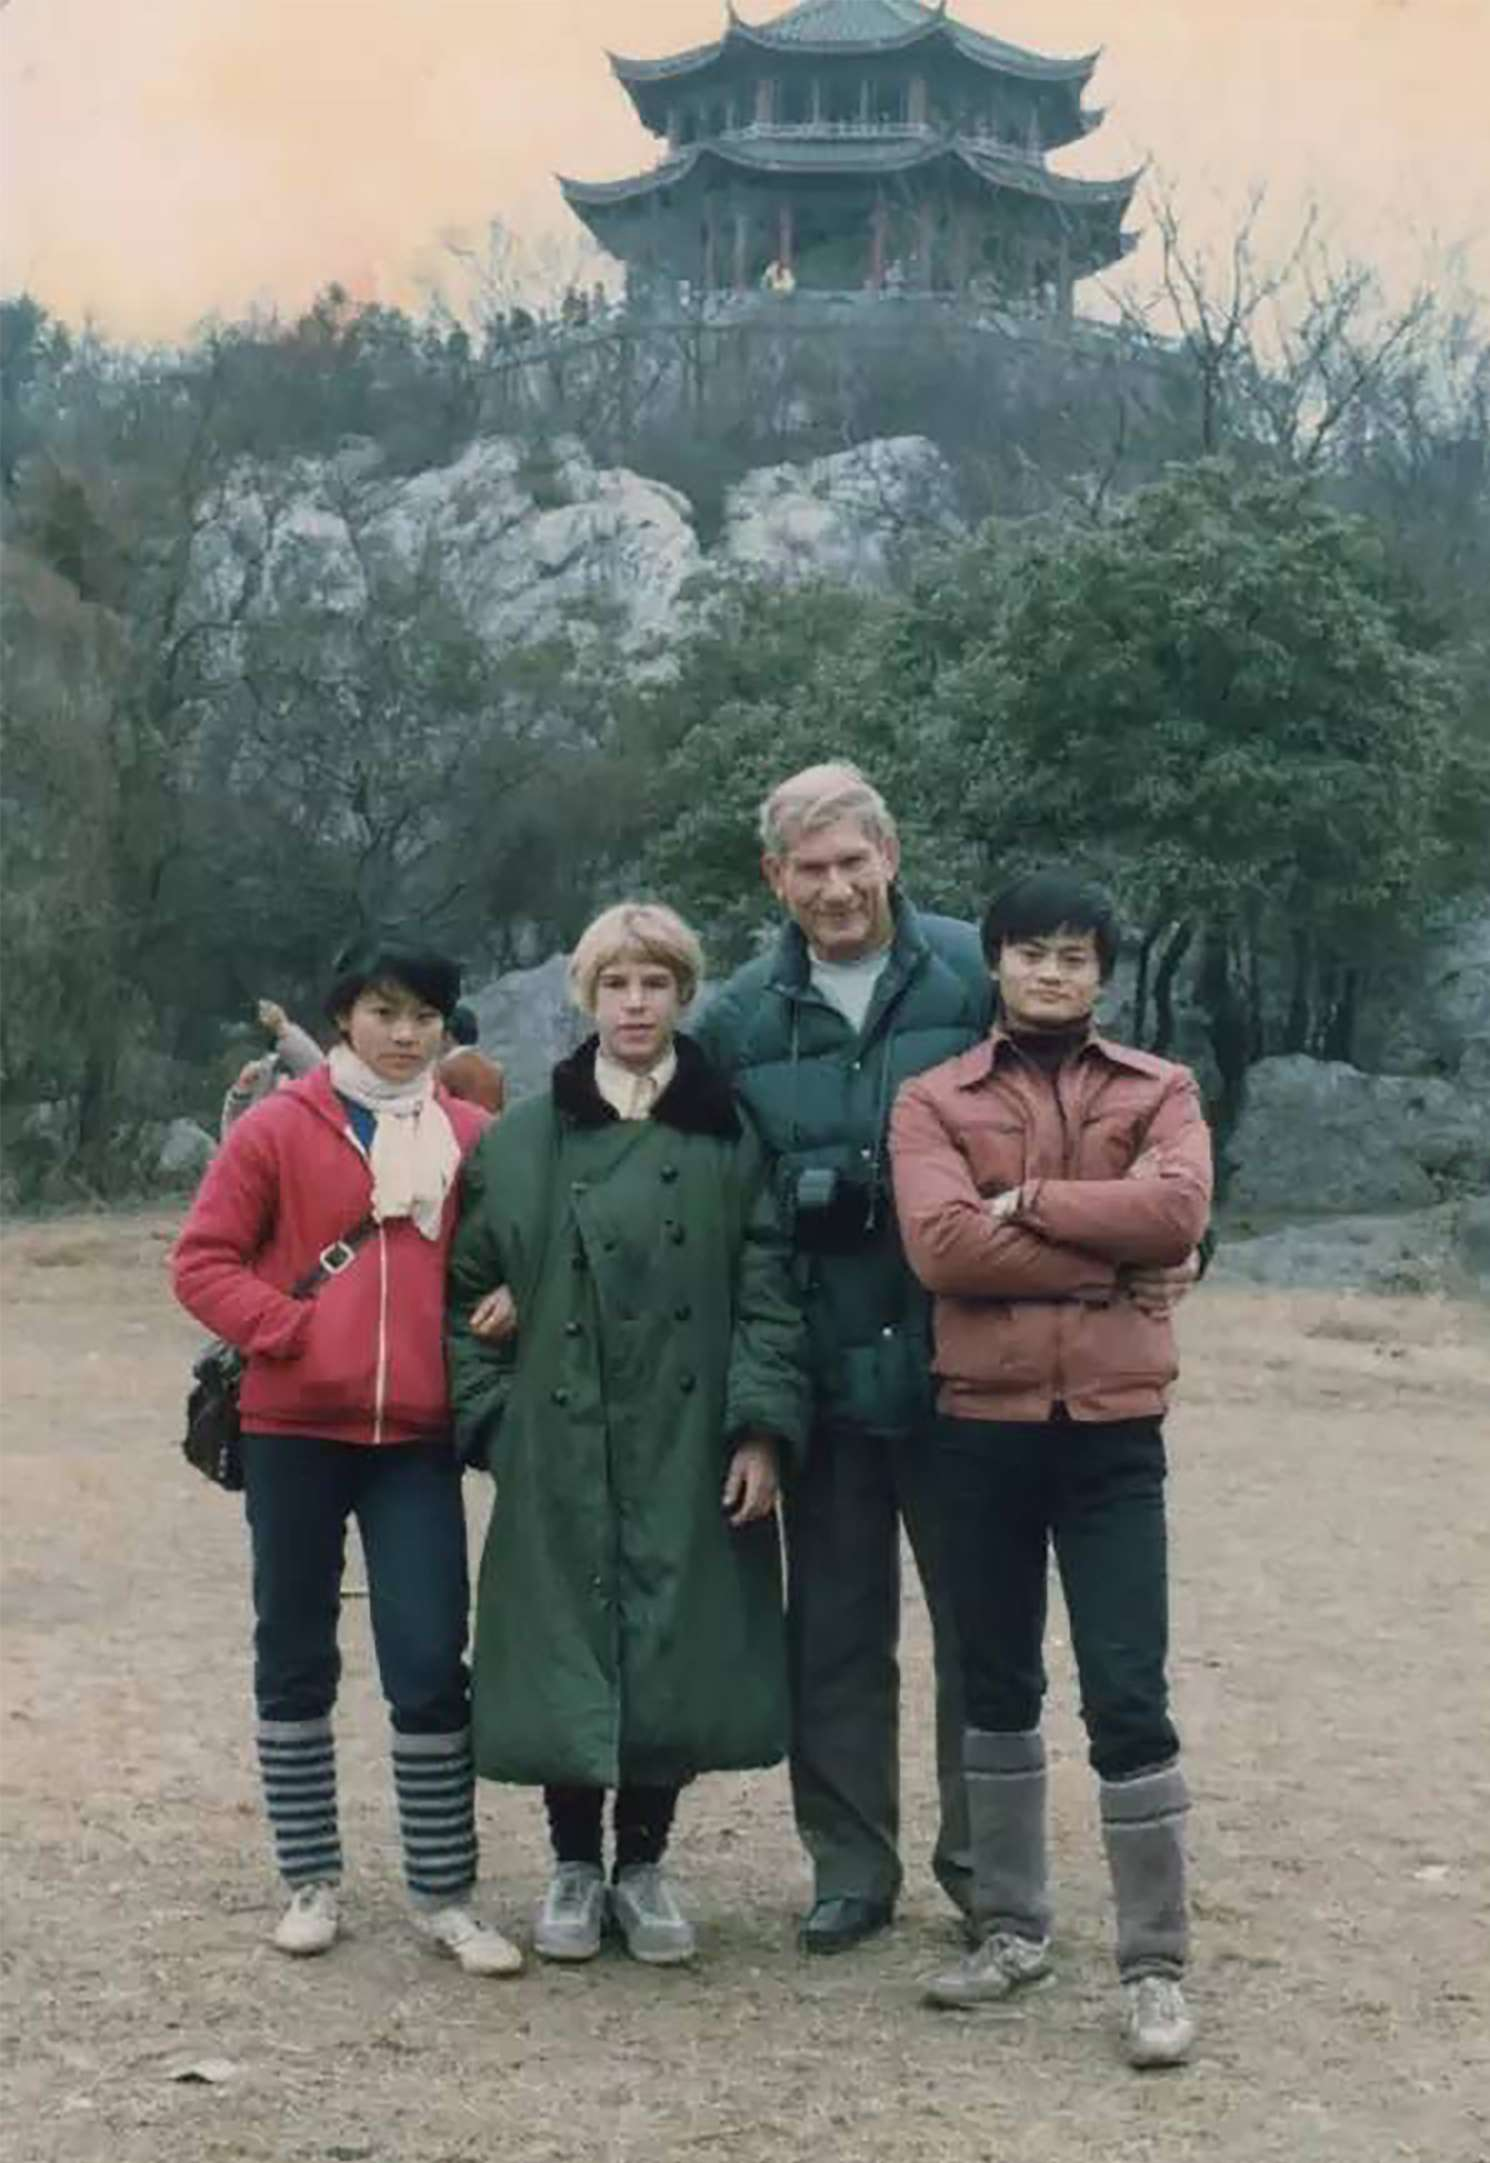 Jack ma with Ken Morley and his family.